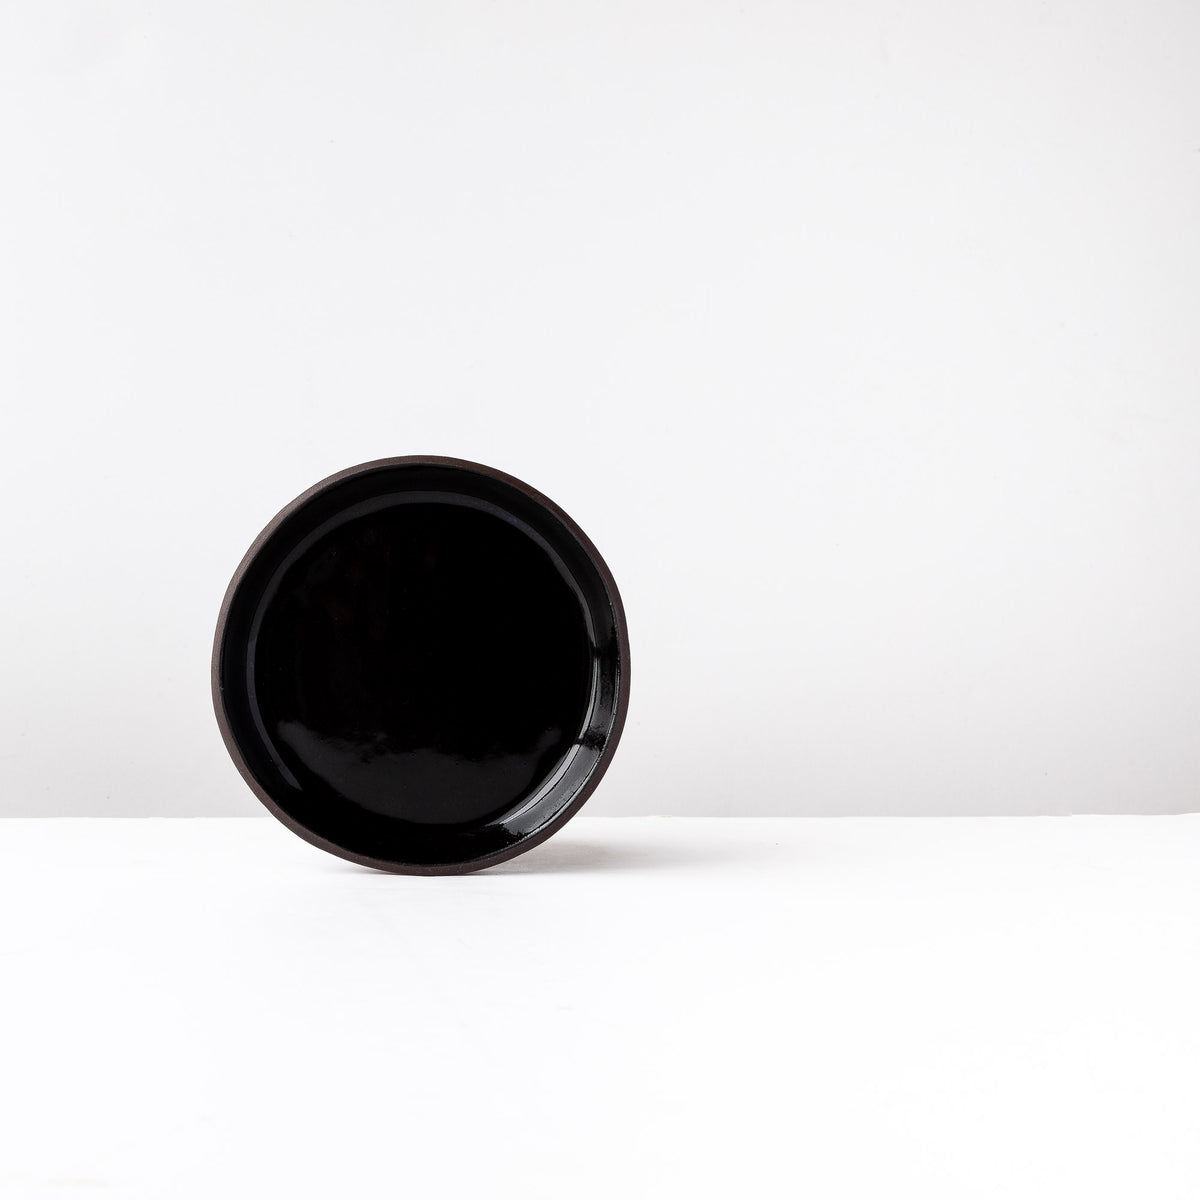 Medium Handmade Saucer in Black Lacquered Stoneware - Sold by Chic & Basta